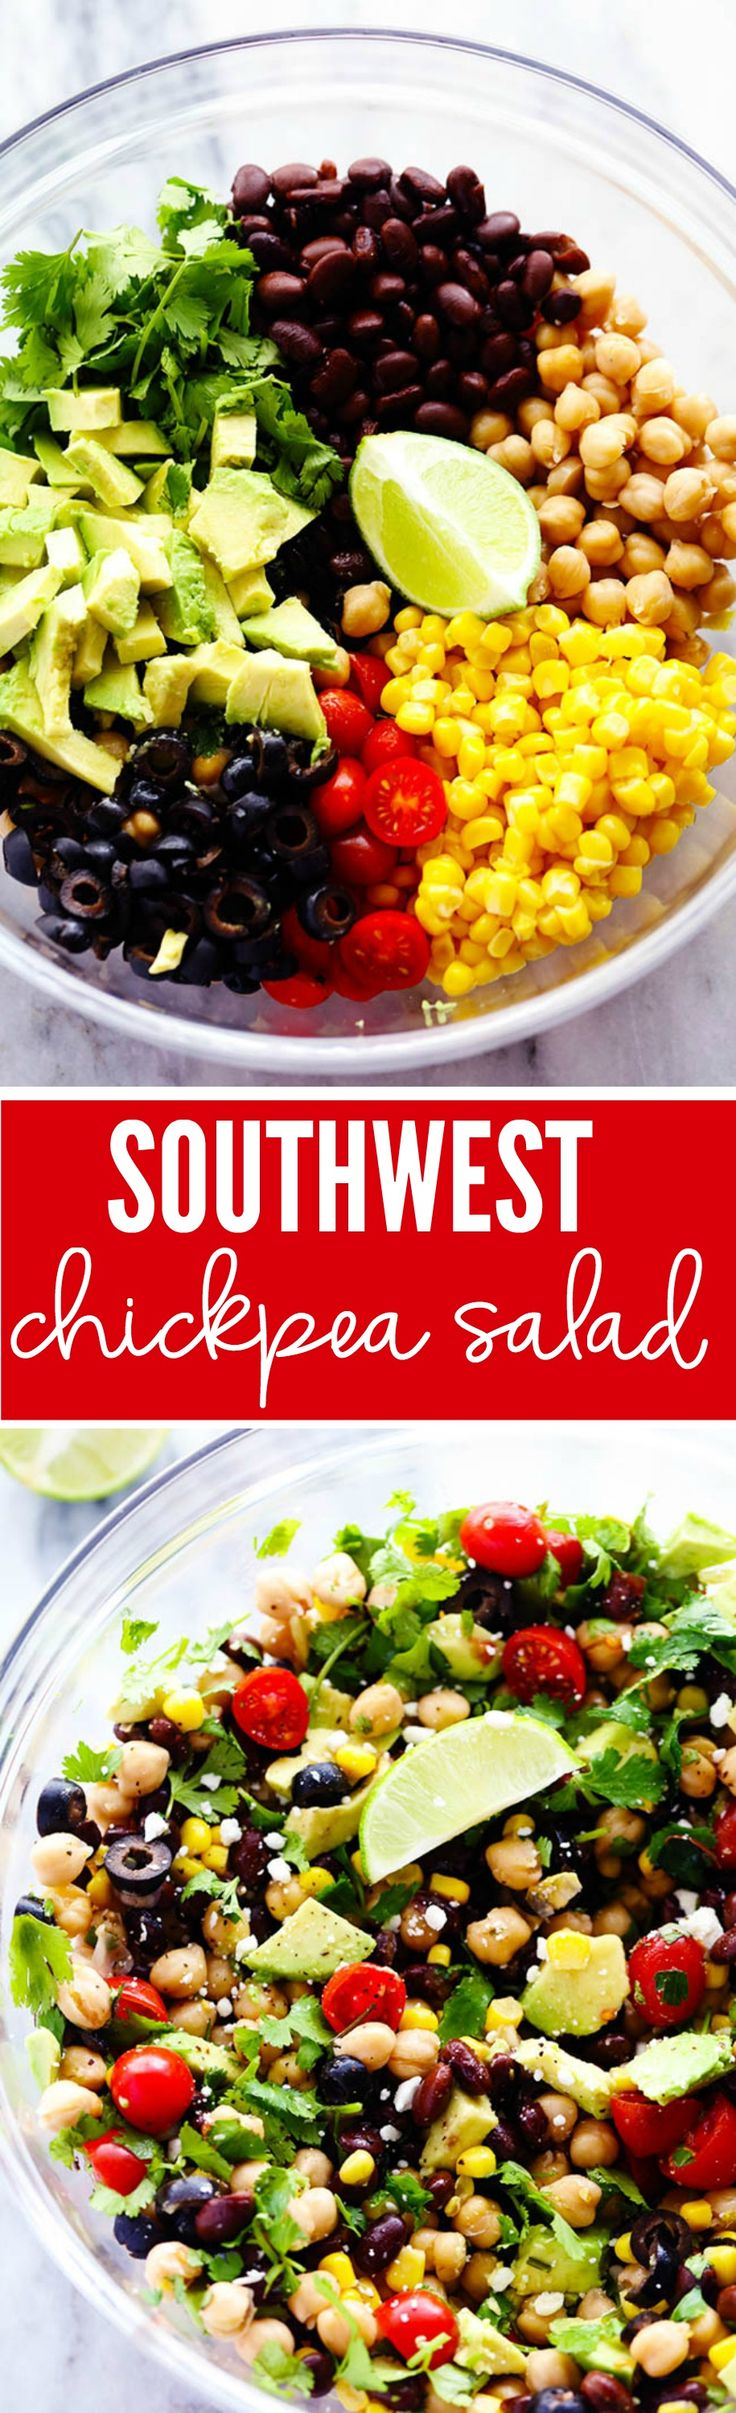 Southwest Chickpea Salad is a delicious and fresh chick pea salad filled so many delicious flavors and textures!